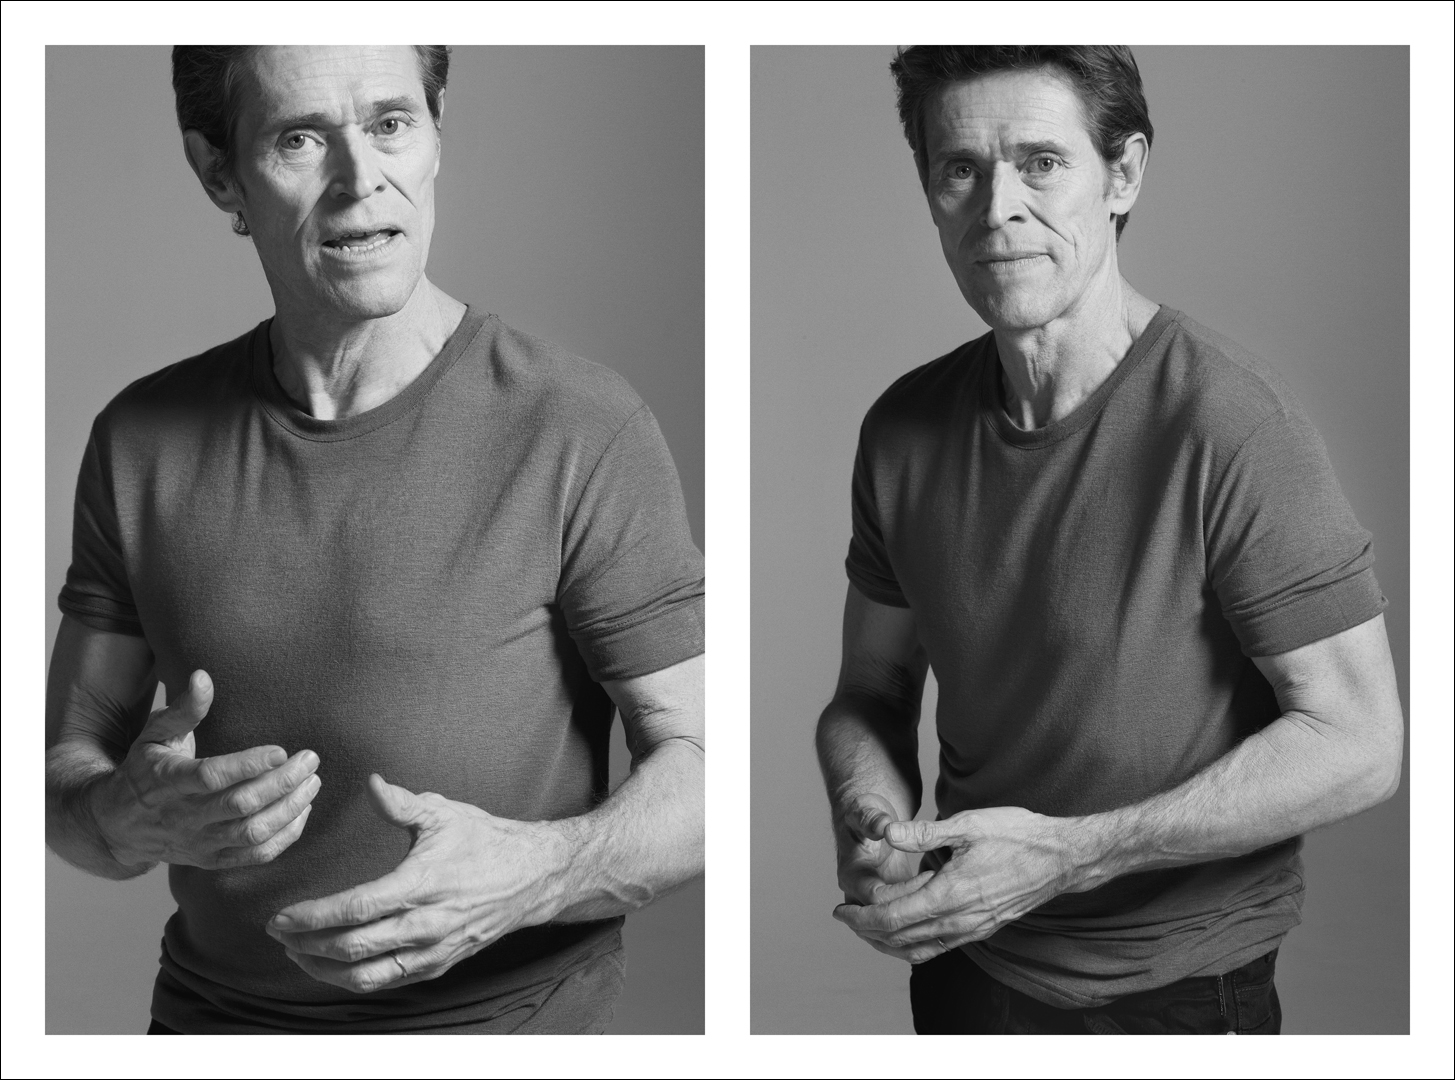 32_TIM_BARBER_WILLEM_DAFOE.jpg